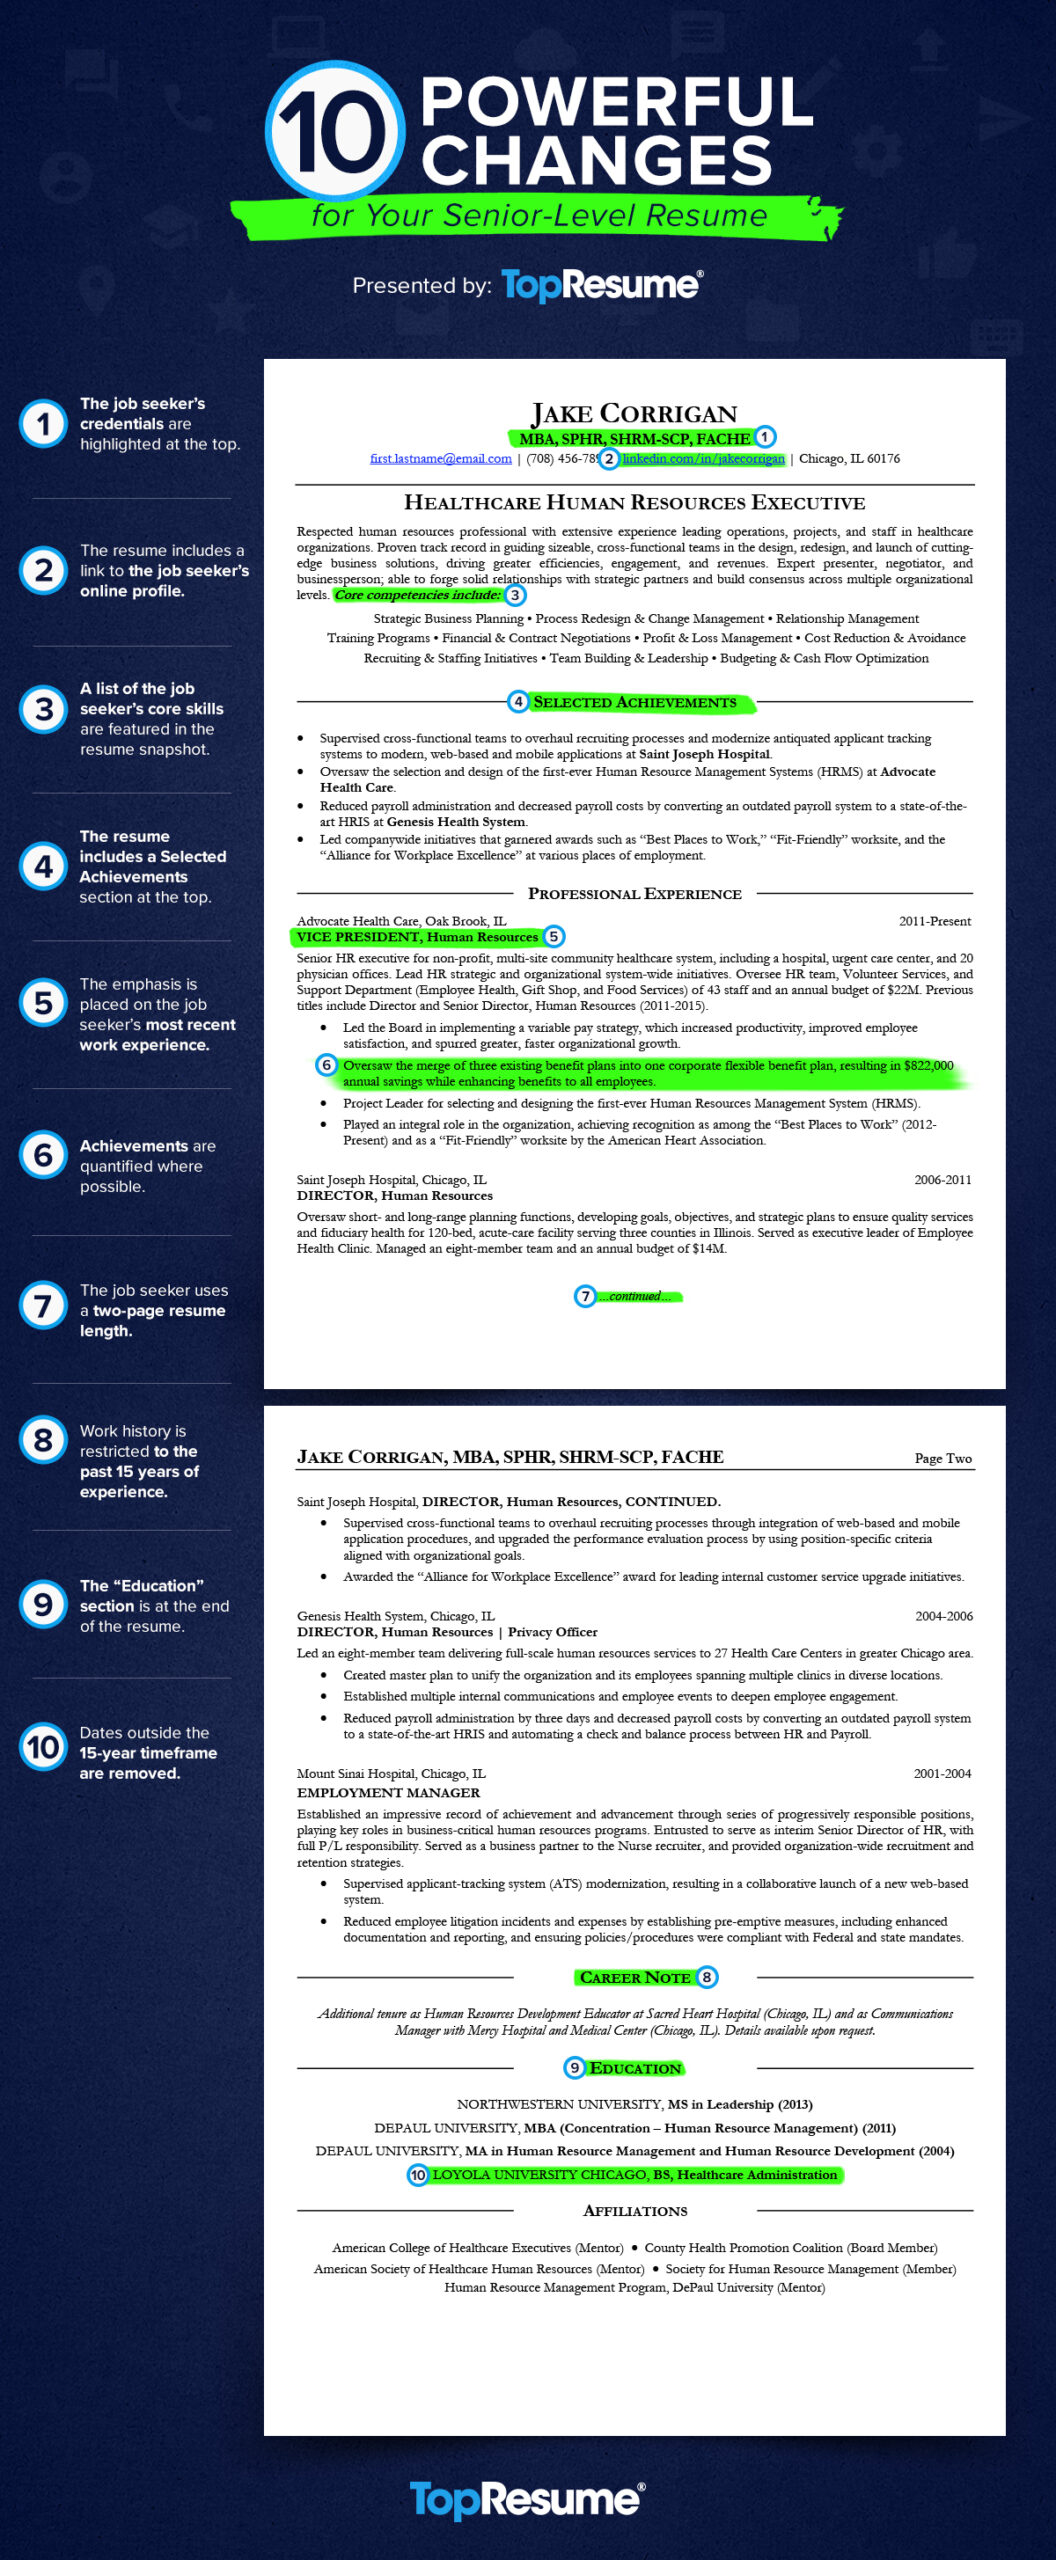 powerful changes for your executive level resume topresume professional service ig v1 Resume Professional Executive Resume Service